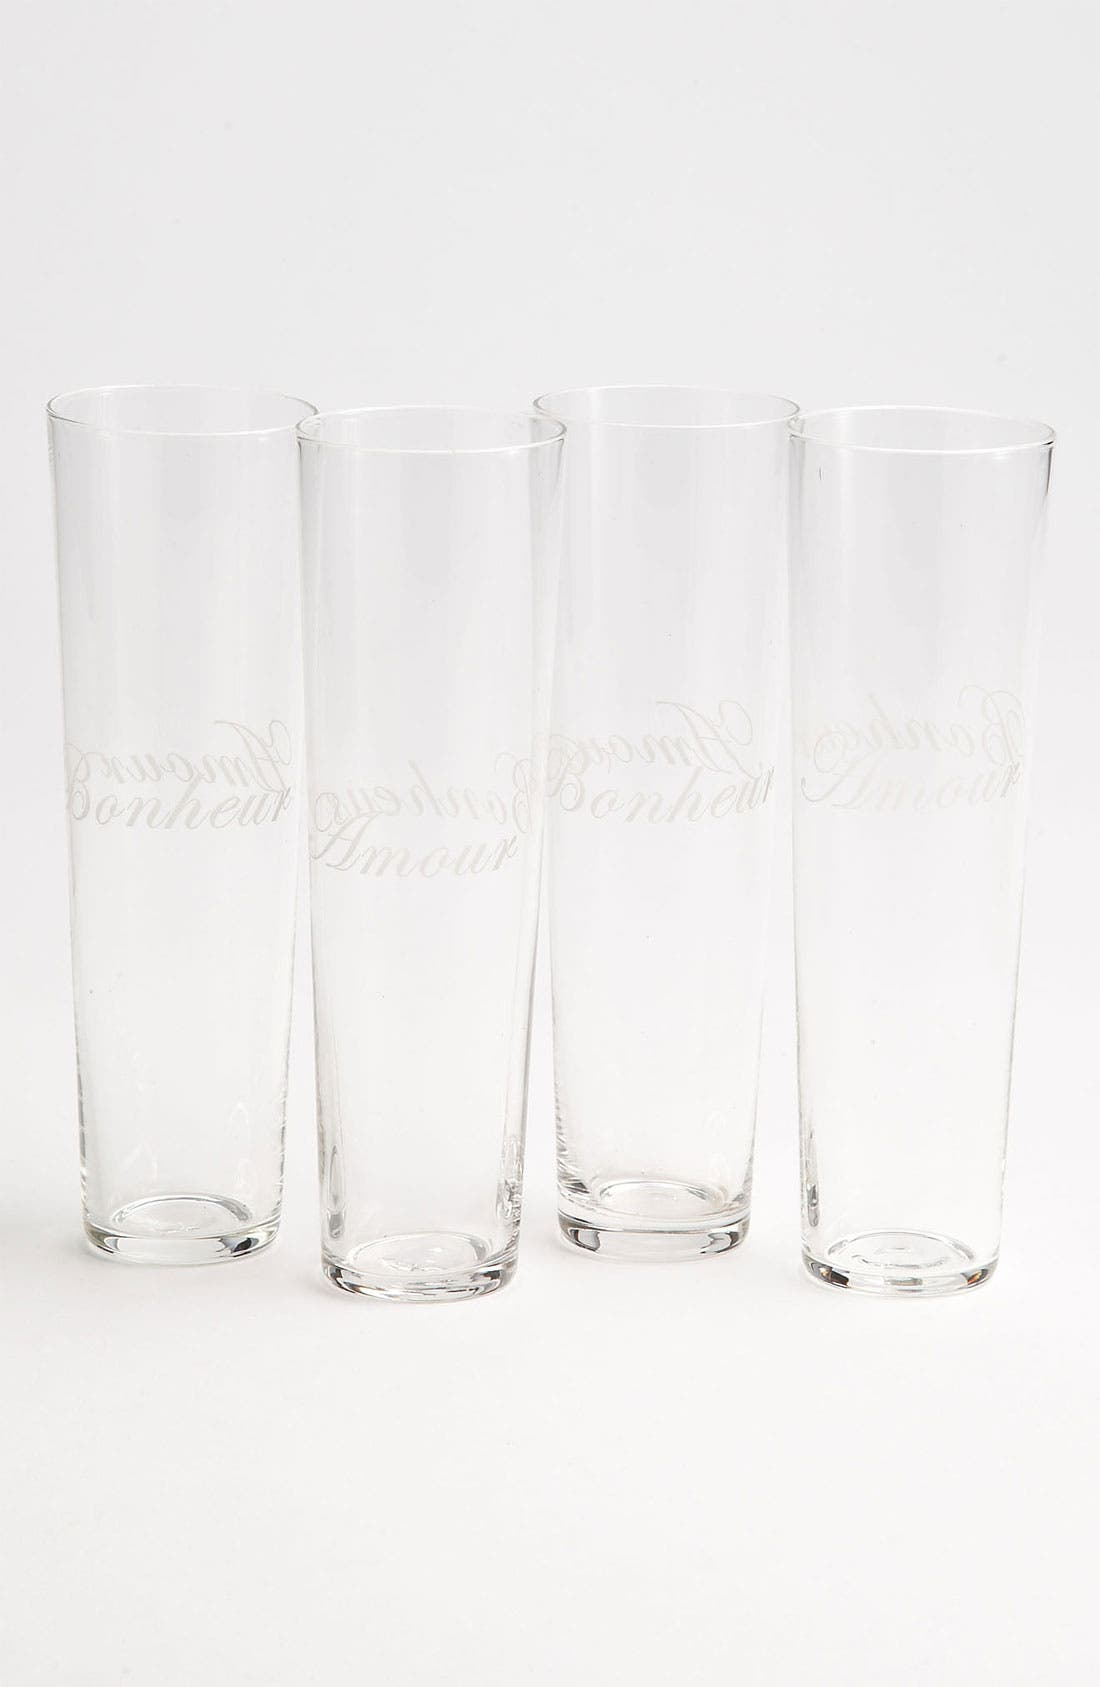 Alternate Image 1 Selected - 'Amour Bonheur' Etched Champagne Flutes (Set of 4)